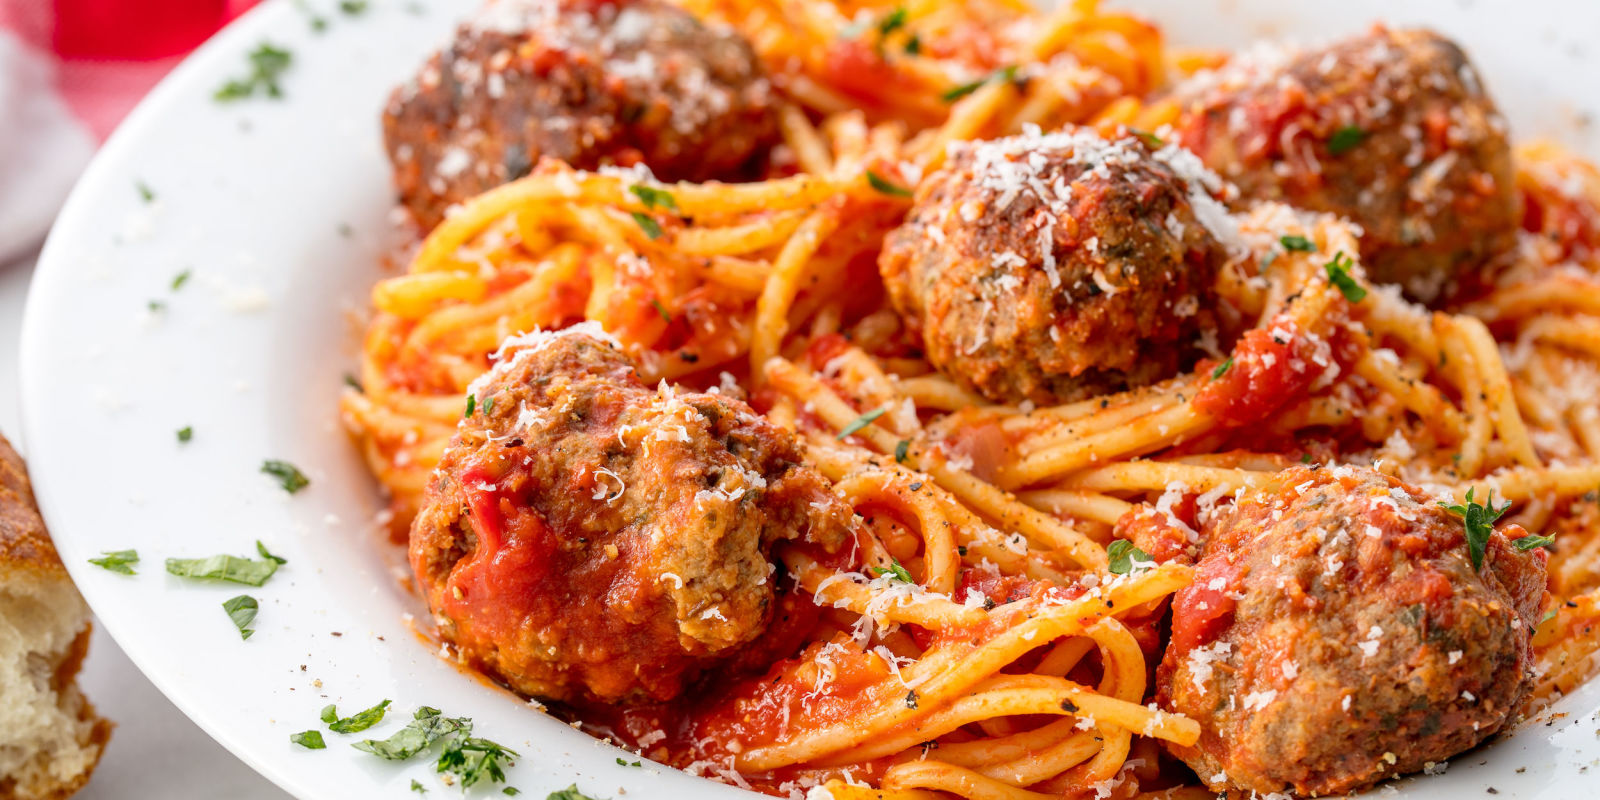 Best Spaghetti and Meatballs Recipe - How to Make Easy ...